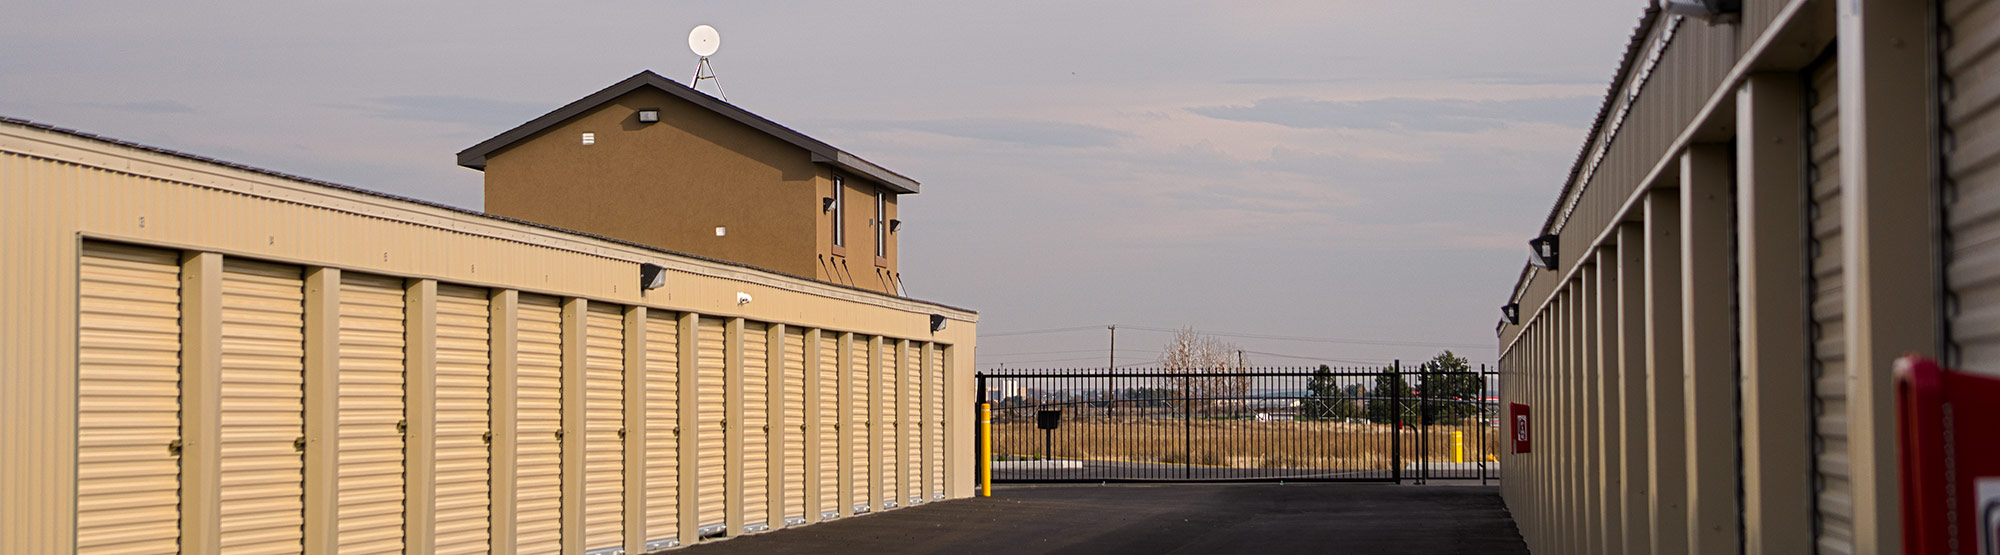 Rear View; Interior Storage ... & Self Storage Units in Pasco WA | Argent Storage